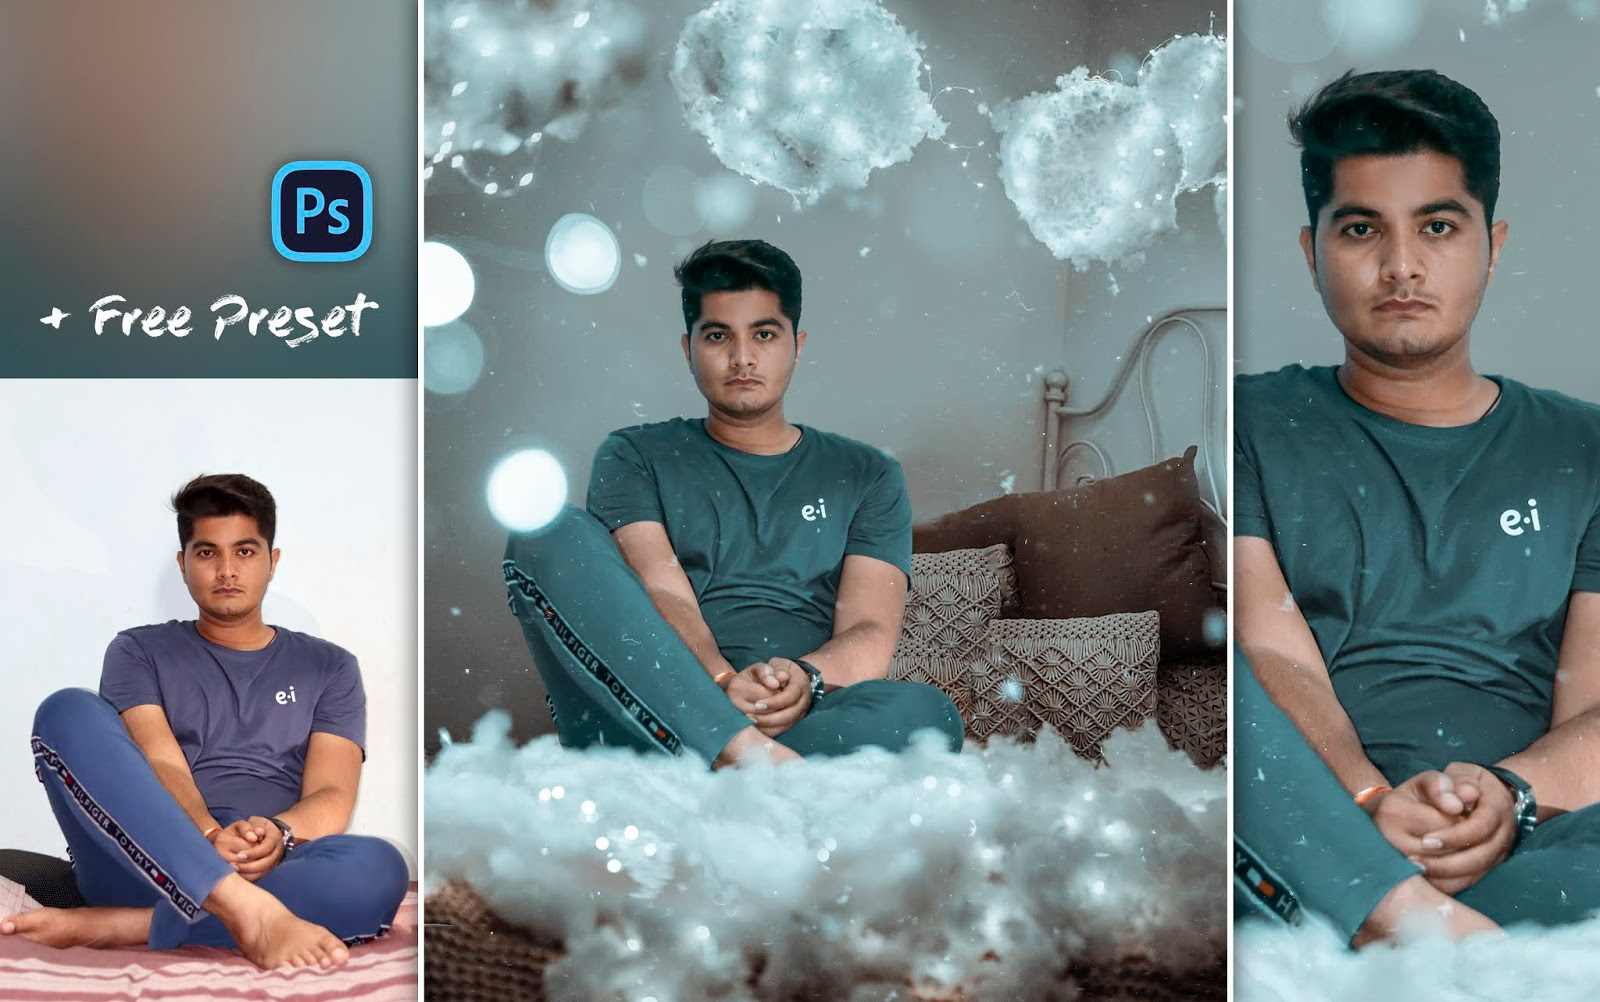 Brandon Woelfel Style Photo Editing in Photoshop cc | New Concept | Cotton Clouds with Fairylights Photo Manipulation